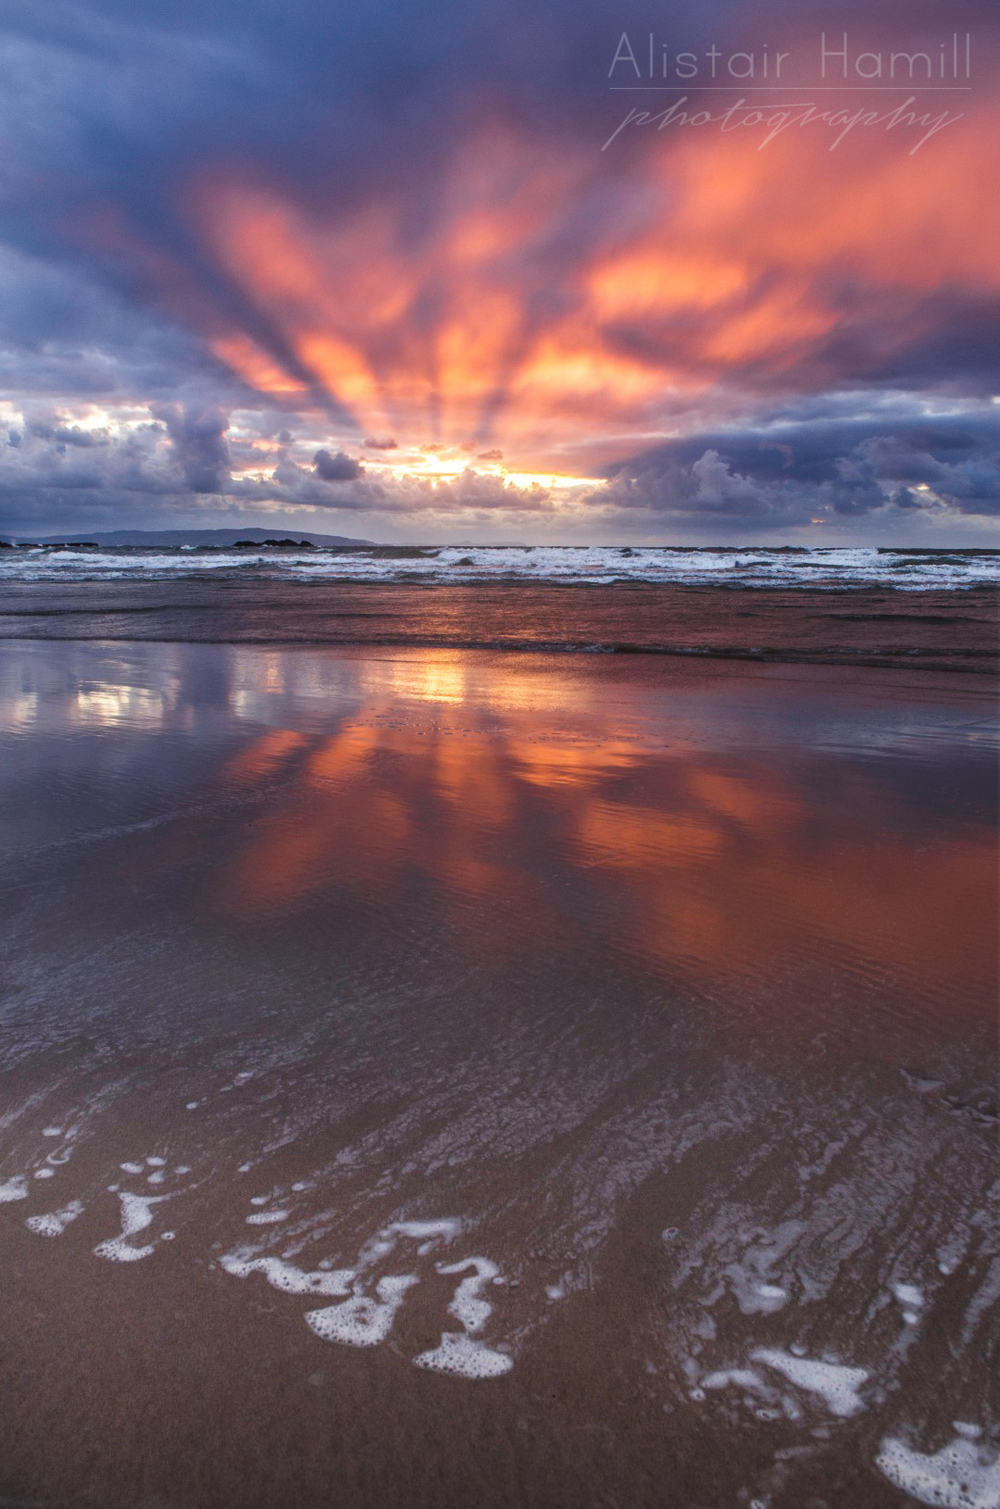 Crepuscular rays - and their reflection - at Portrush.